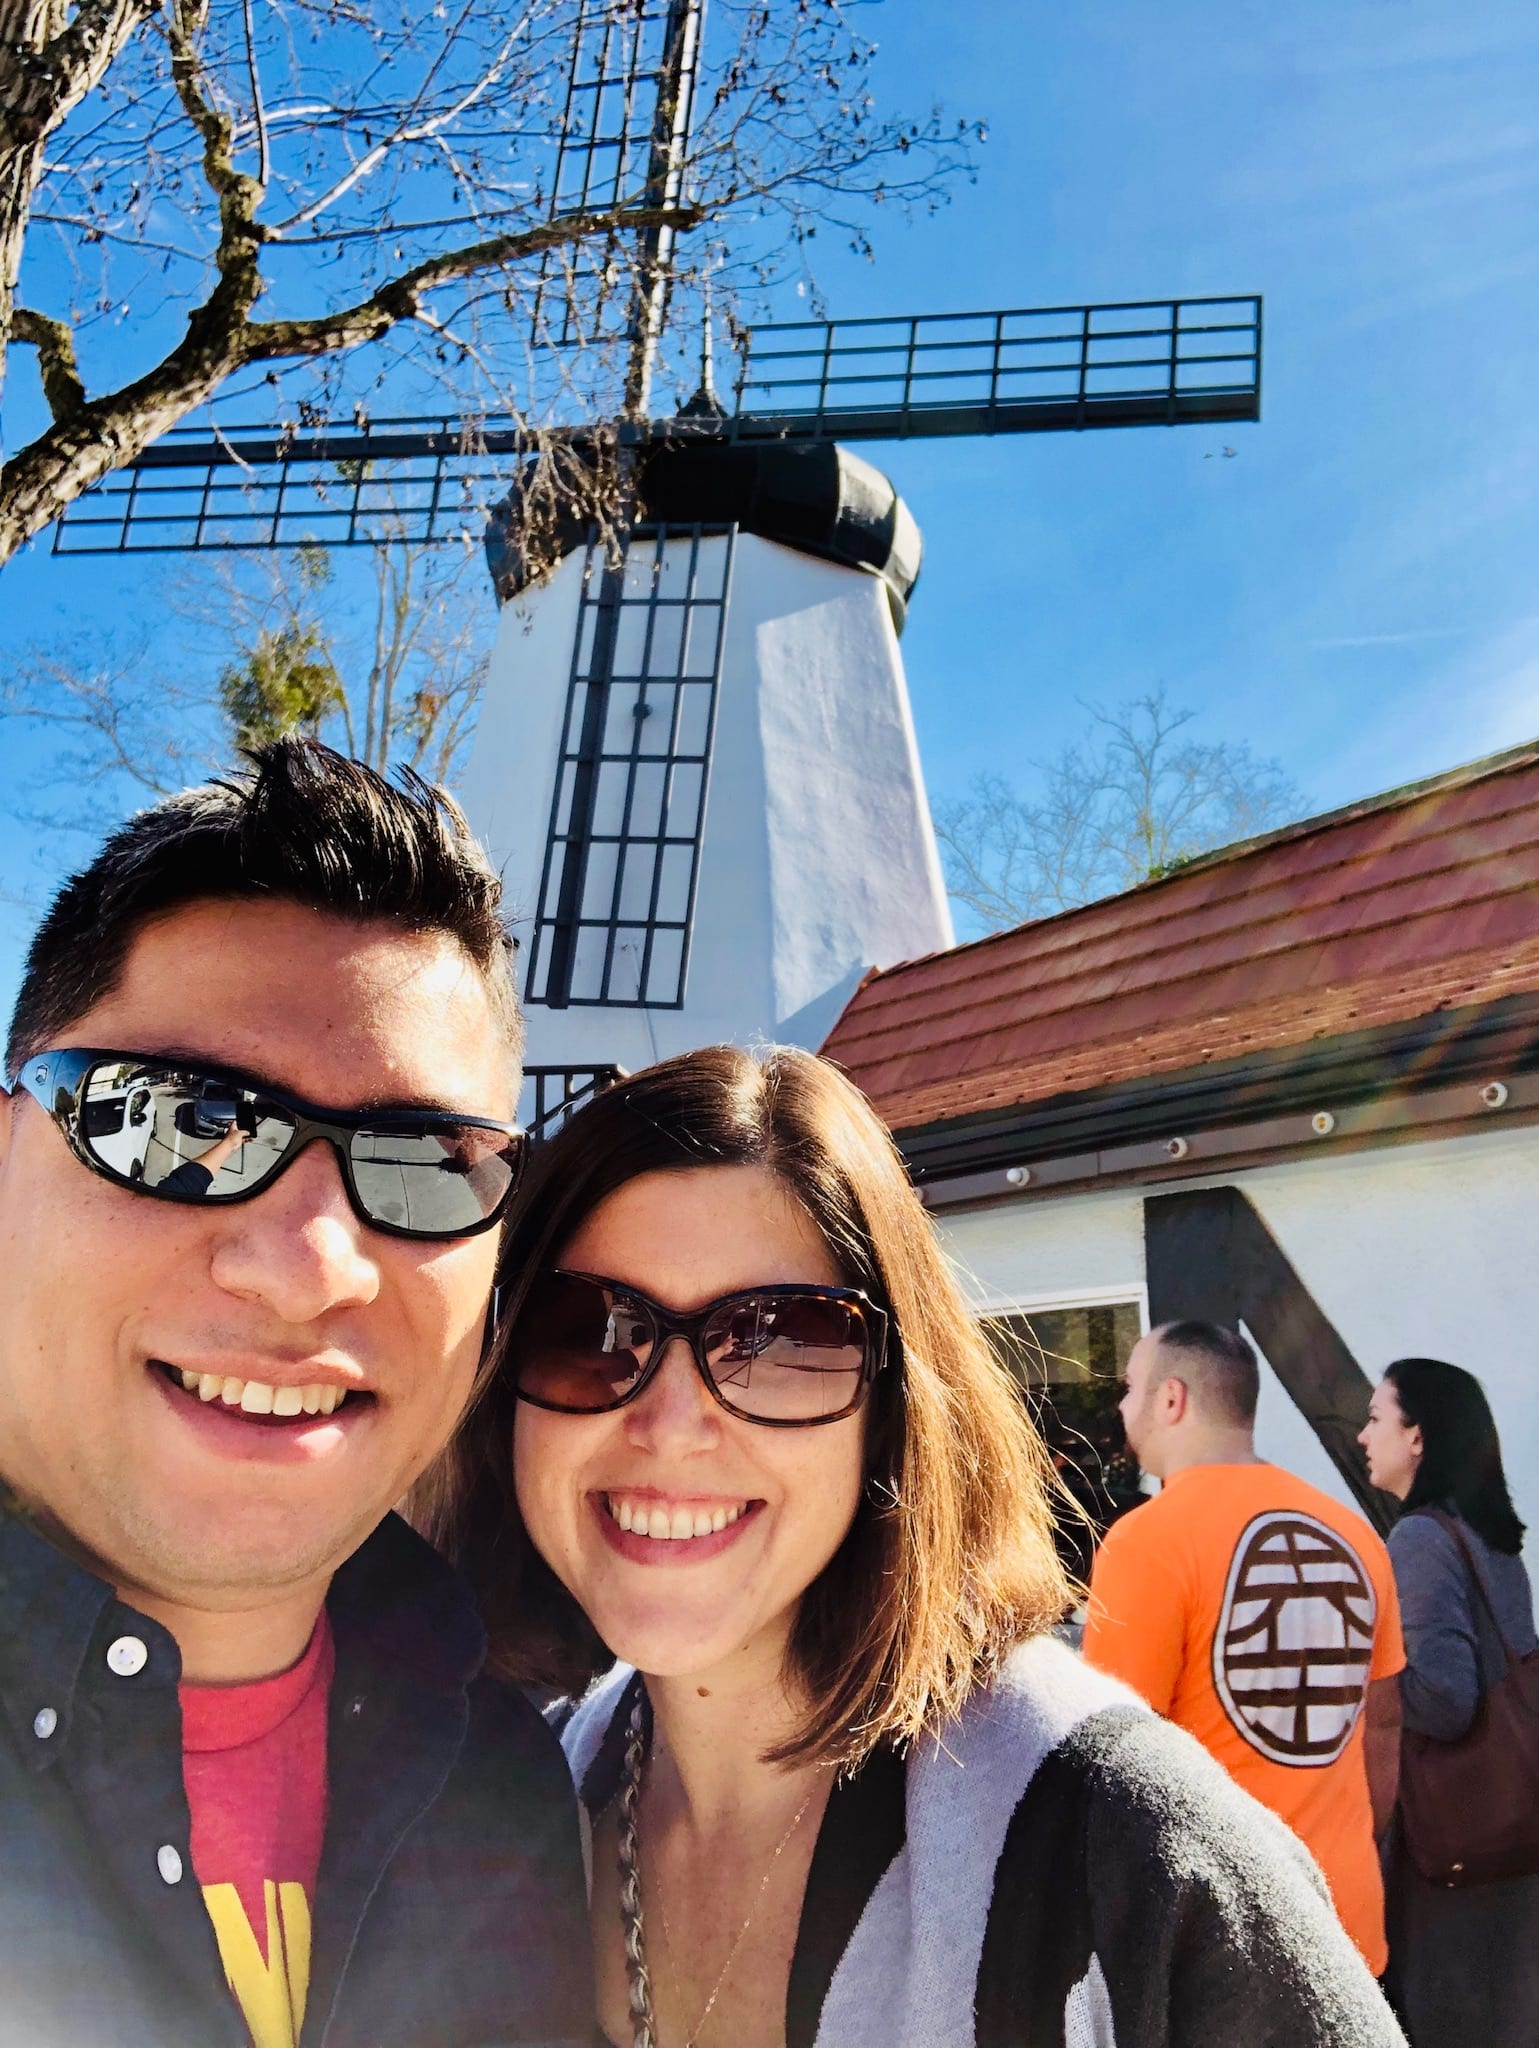 John and Kirsty in front of a Solvang windmill